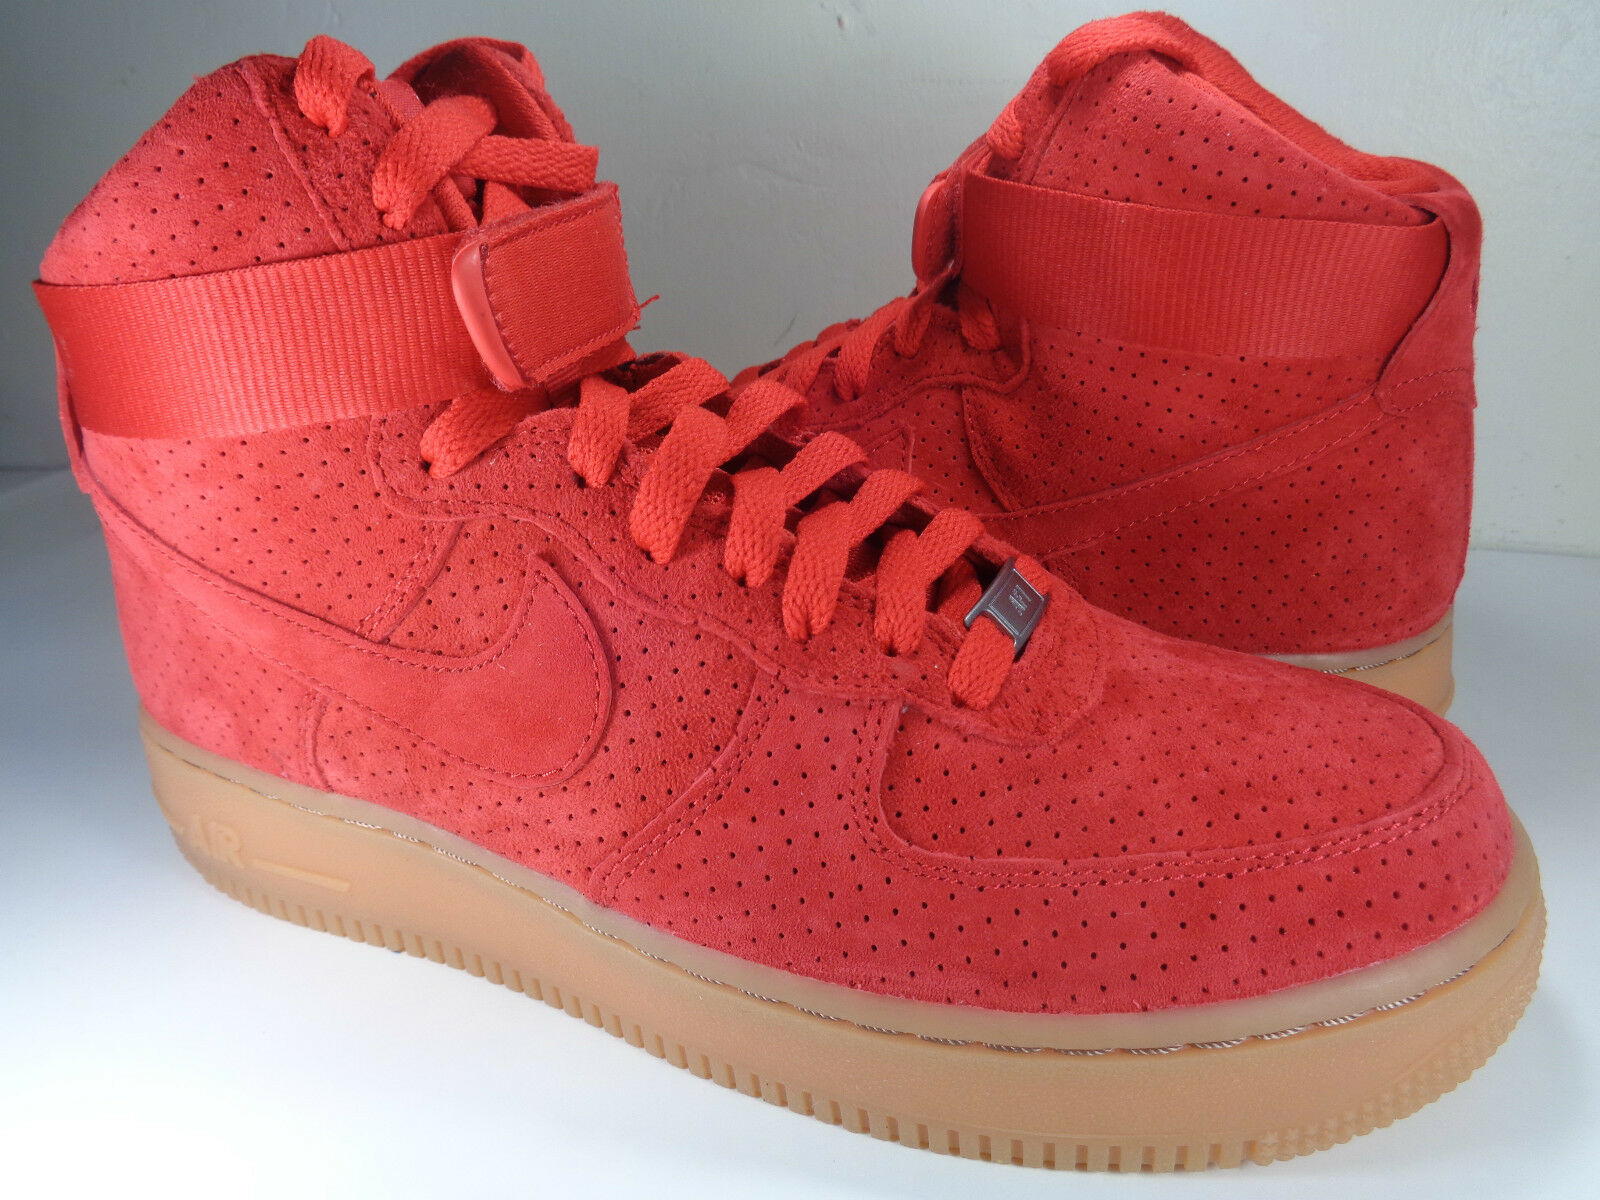 Womens Nike Air Force 1 Hi Suede University Red Gum SZ 10 (749266-601)